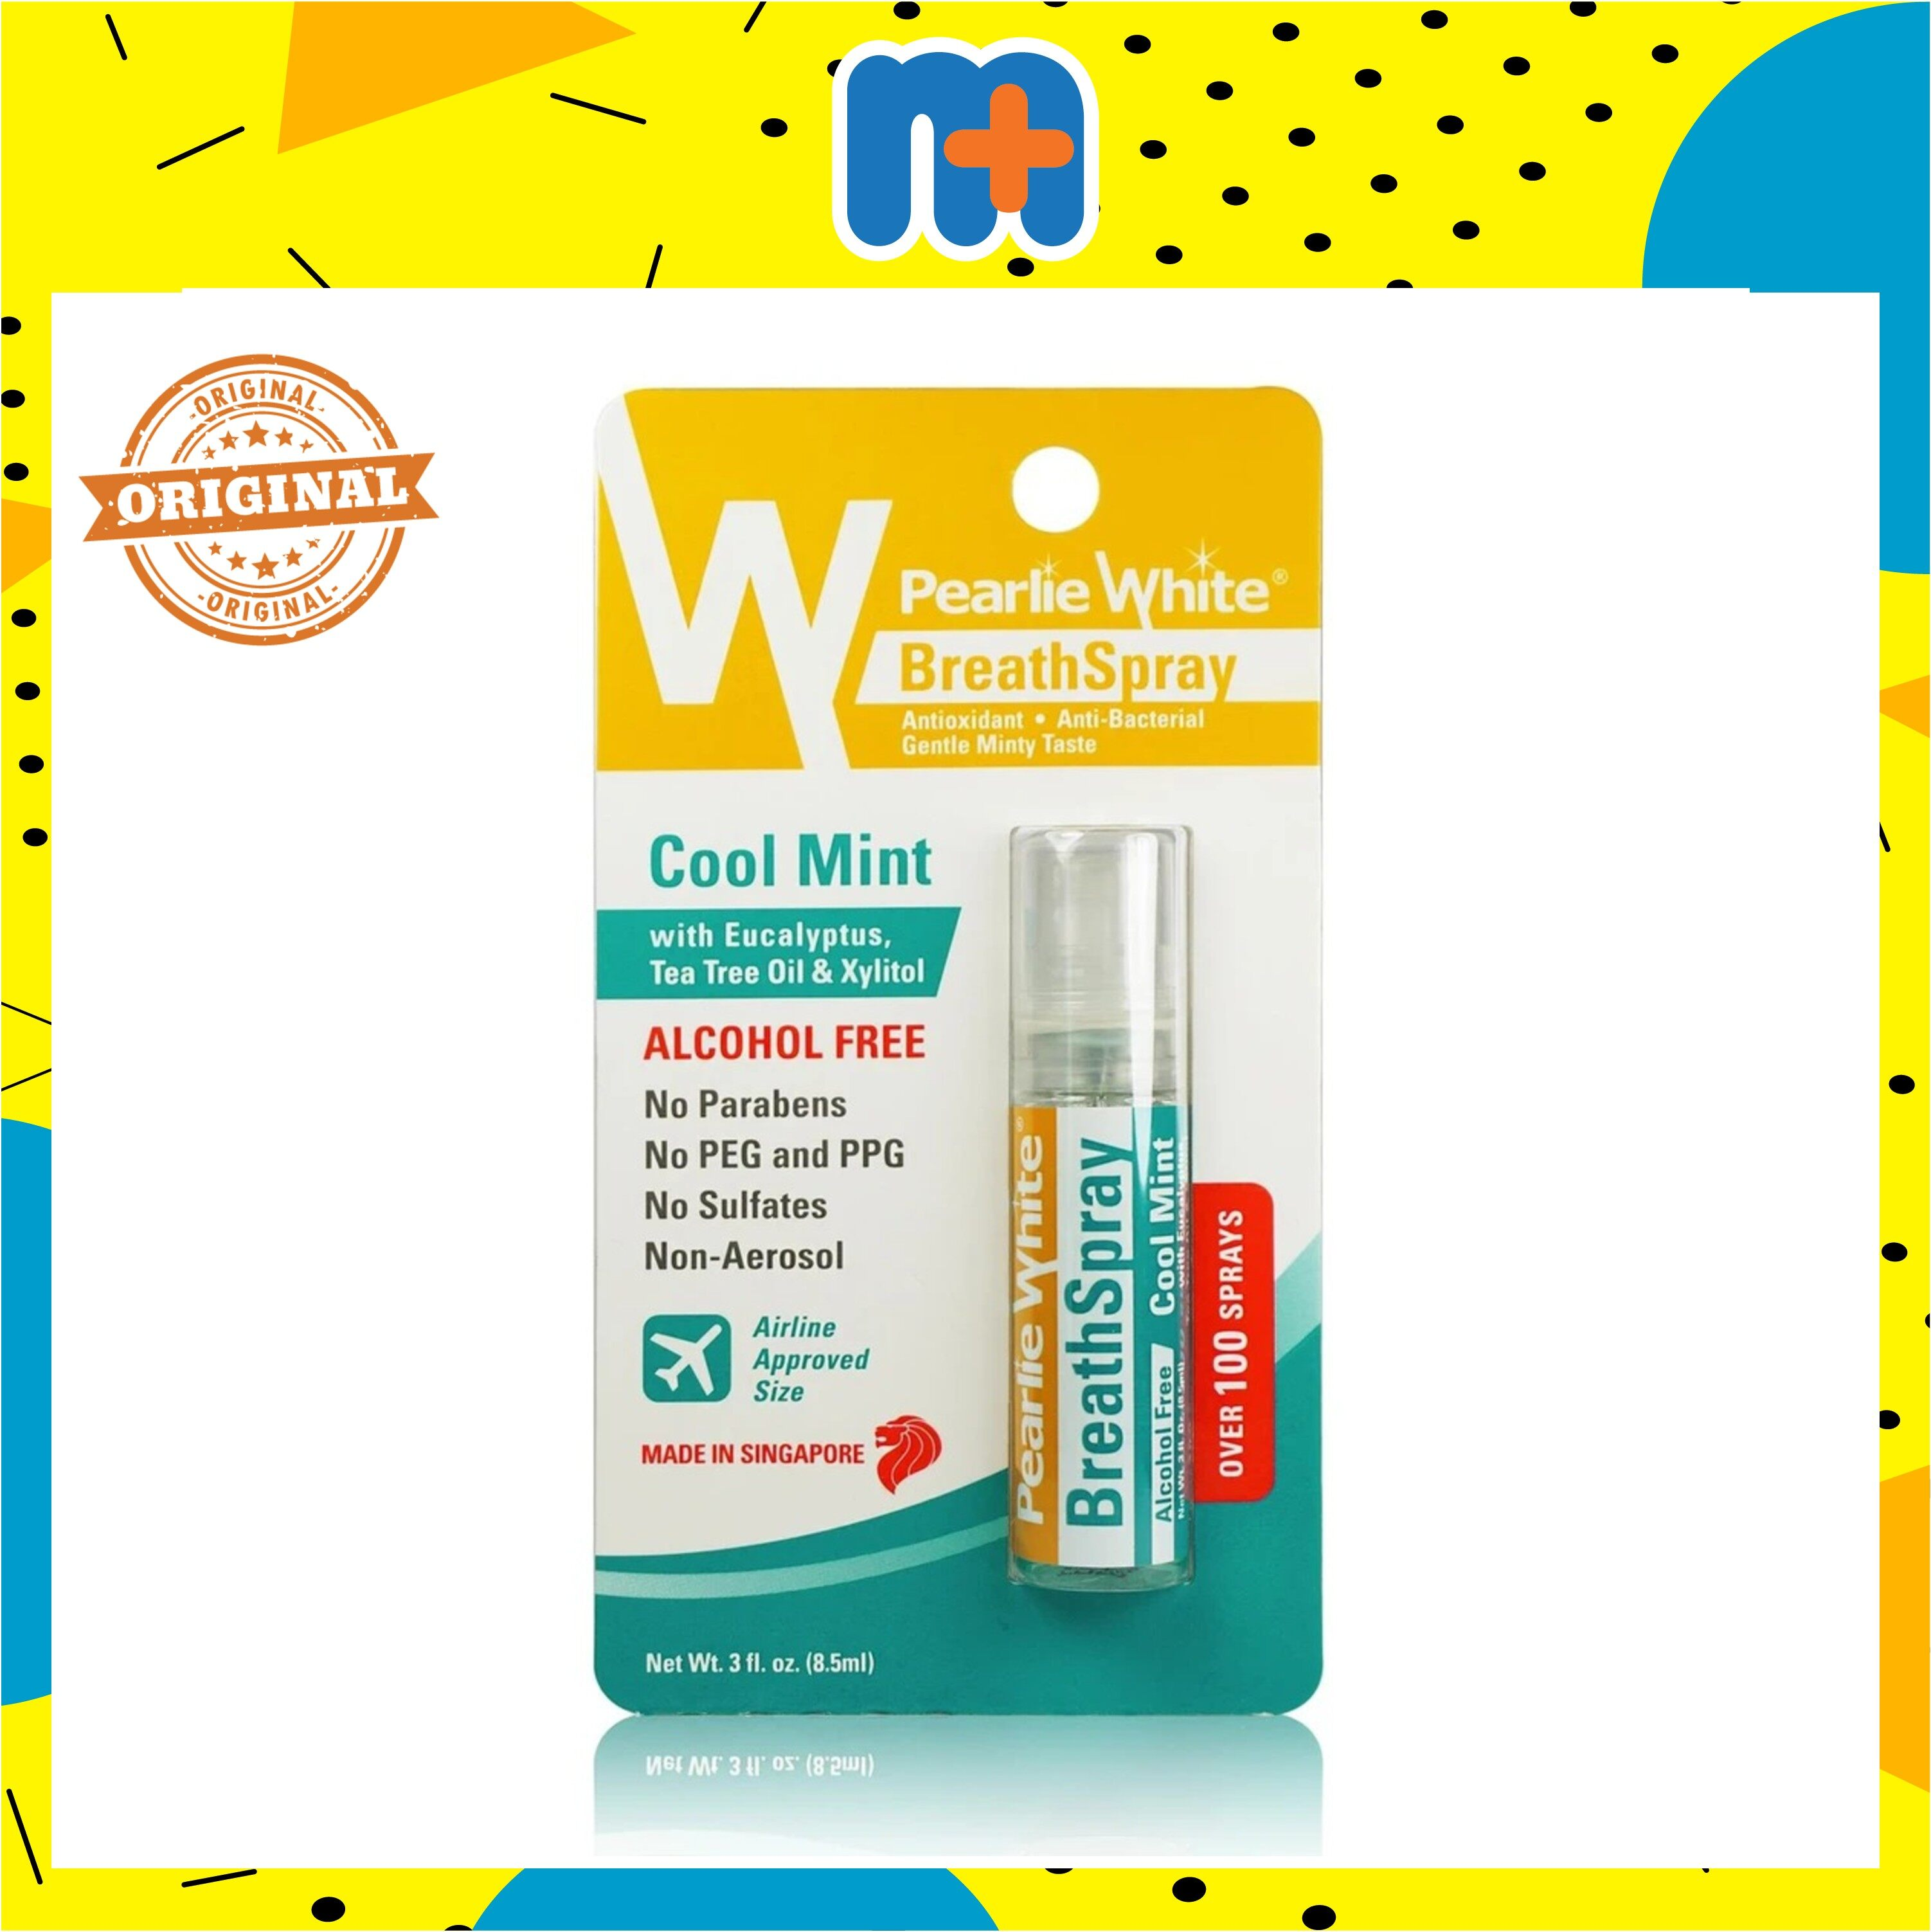 PEARLIE WHITE BREATHSPRAY COOL MINT (ALCOHOL FREE) 8.5ML